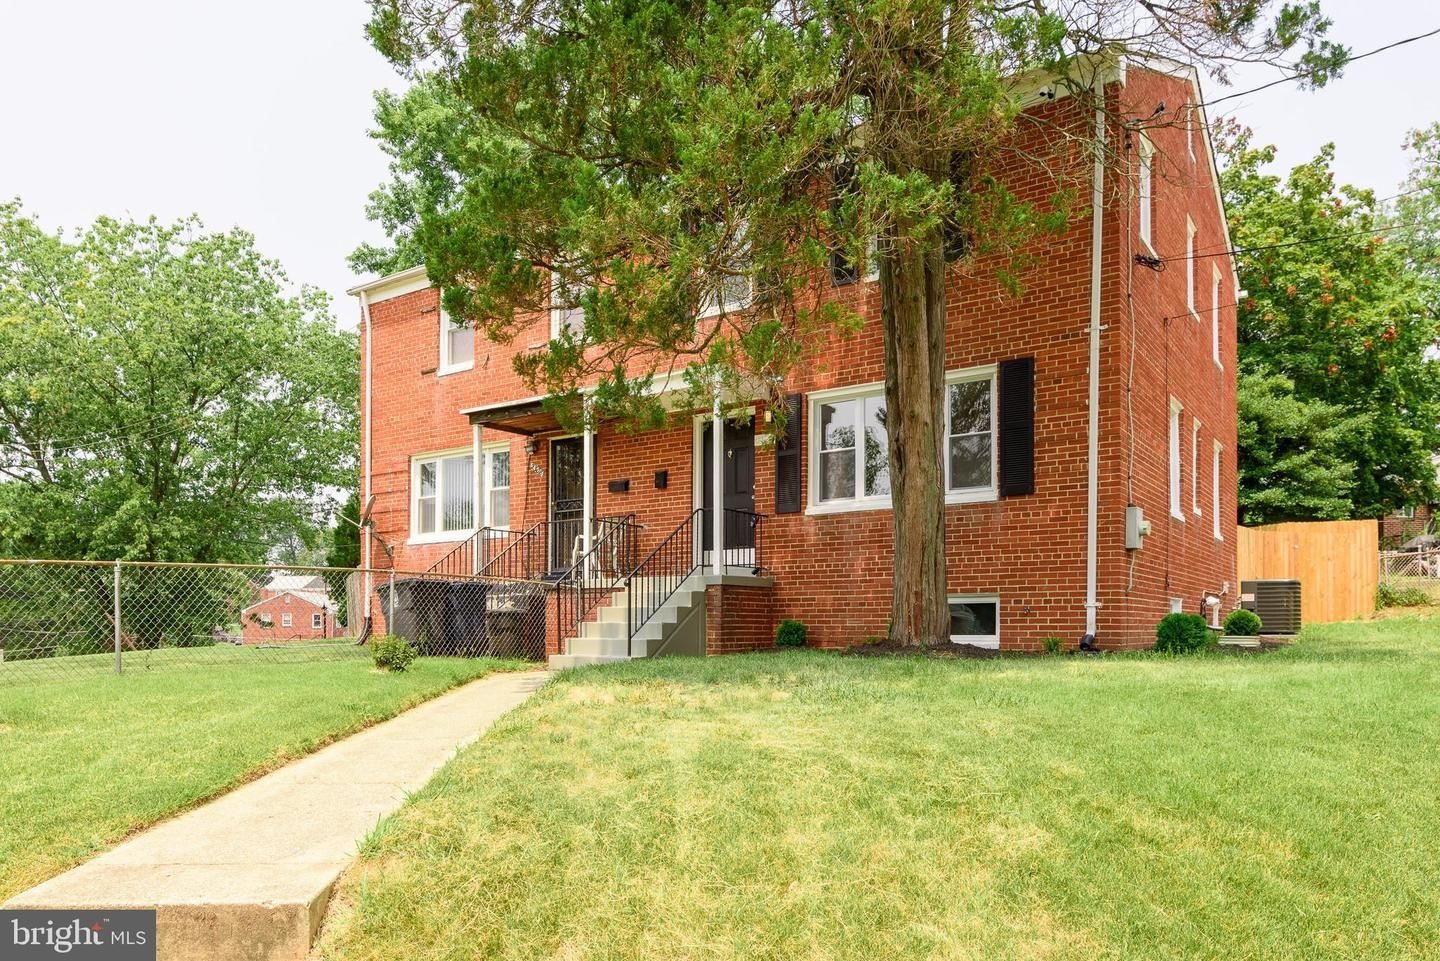 Photo of 4129 ATMORE PL, TEMPLE HILLS, MD 20748 (MLS # MDPG609694)